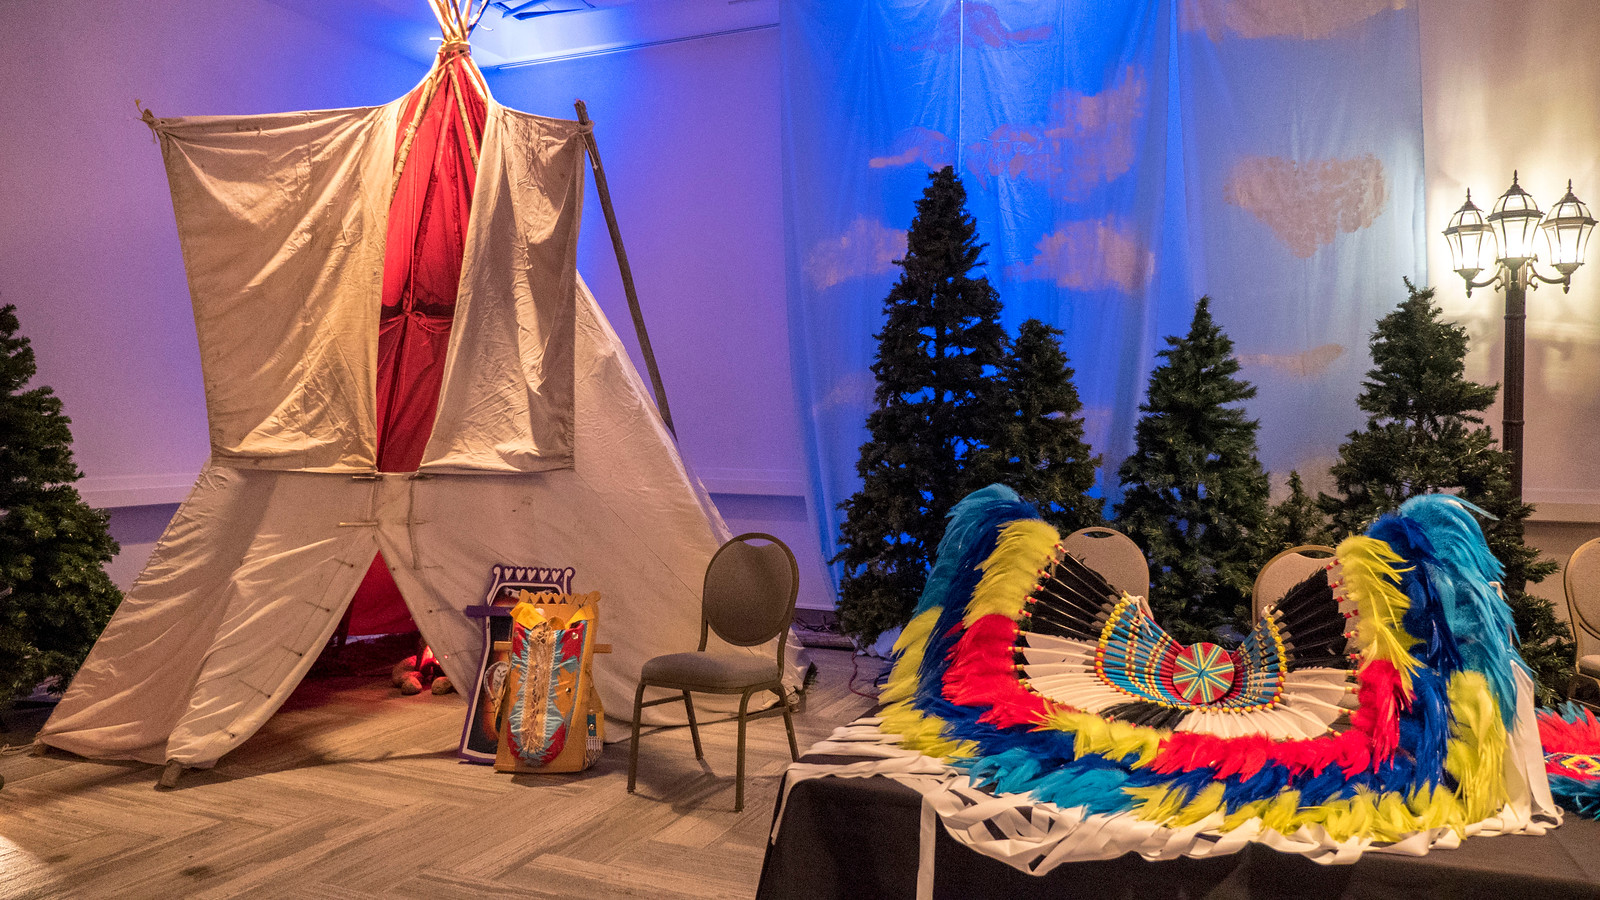 Folklorama Winnipeg - First Nations Pavilion - Things to Do in Winnipeg: A Couples Getaway Guide